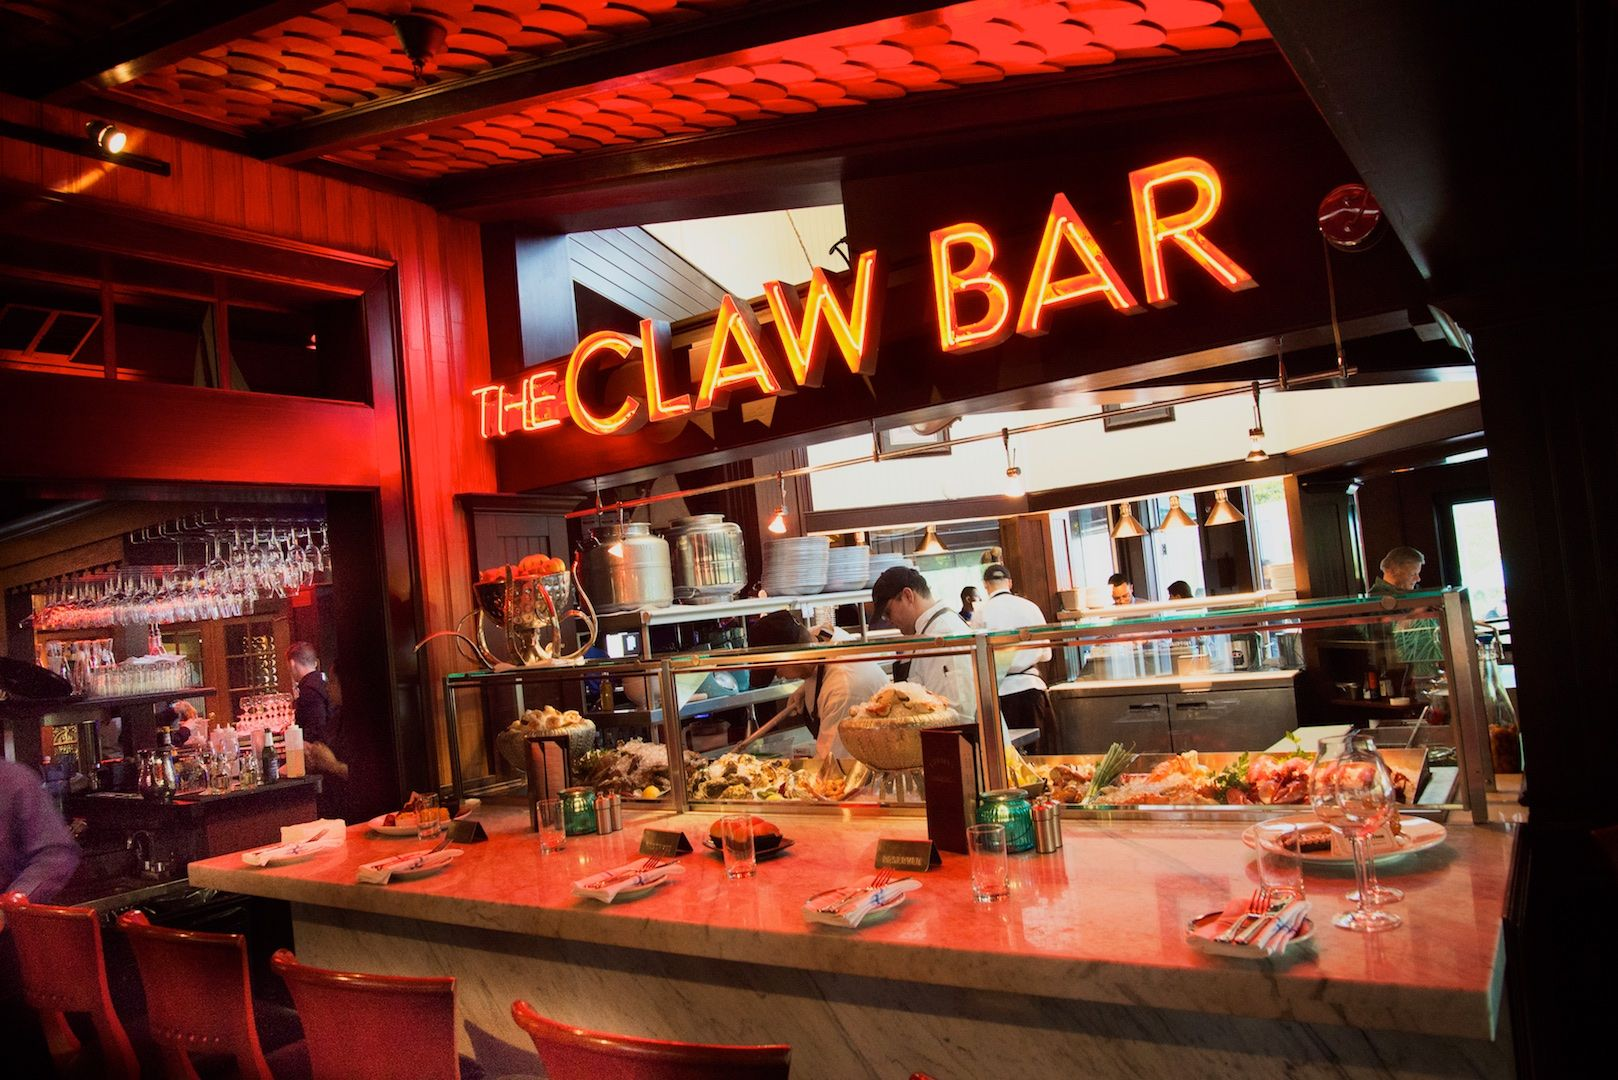 The Claw Bar At Tierneys Tavern The Claw Bar Naples